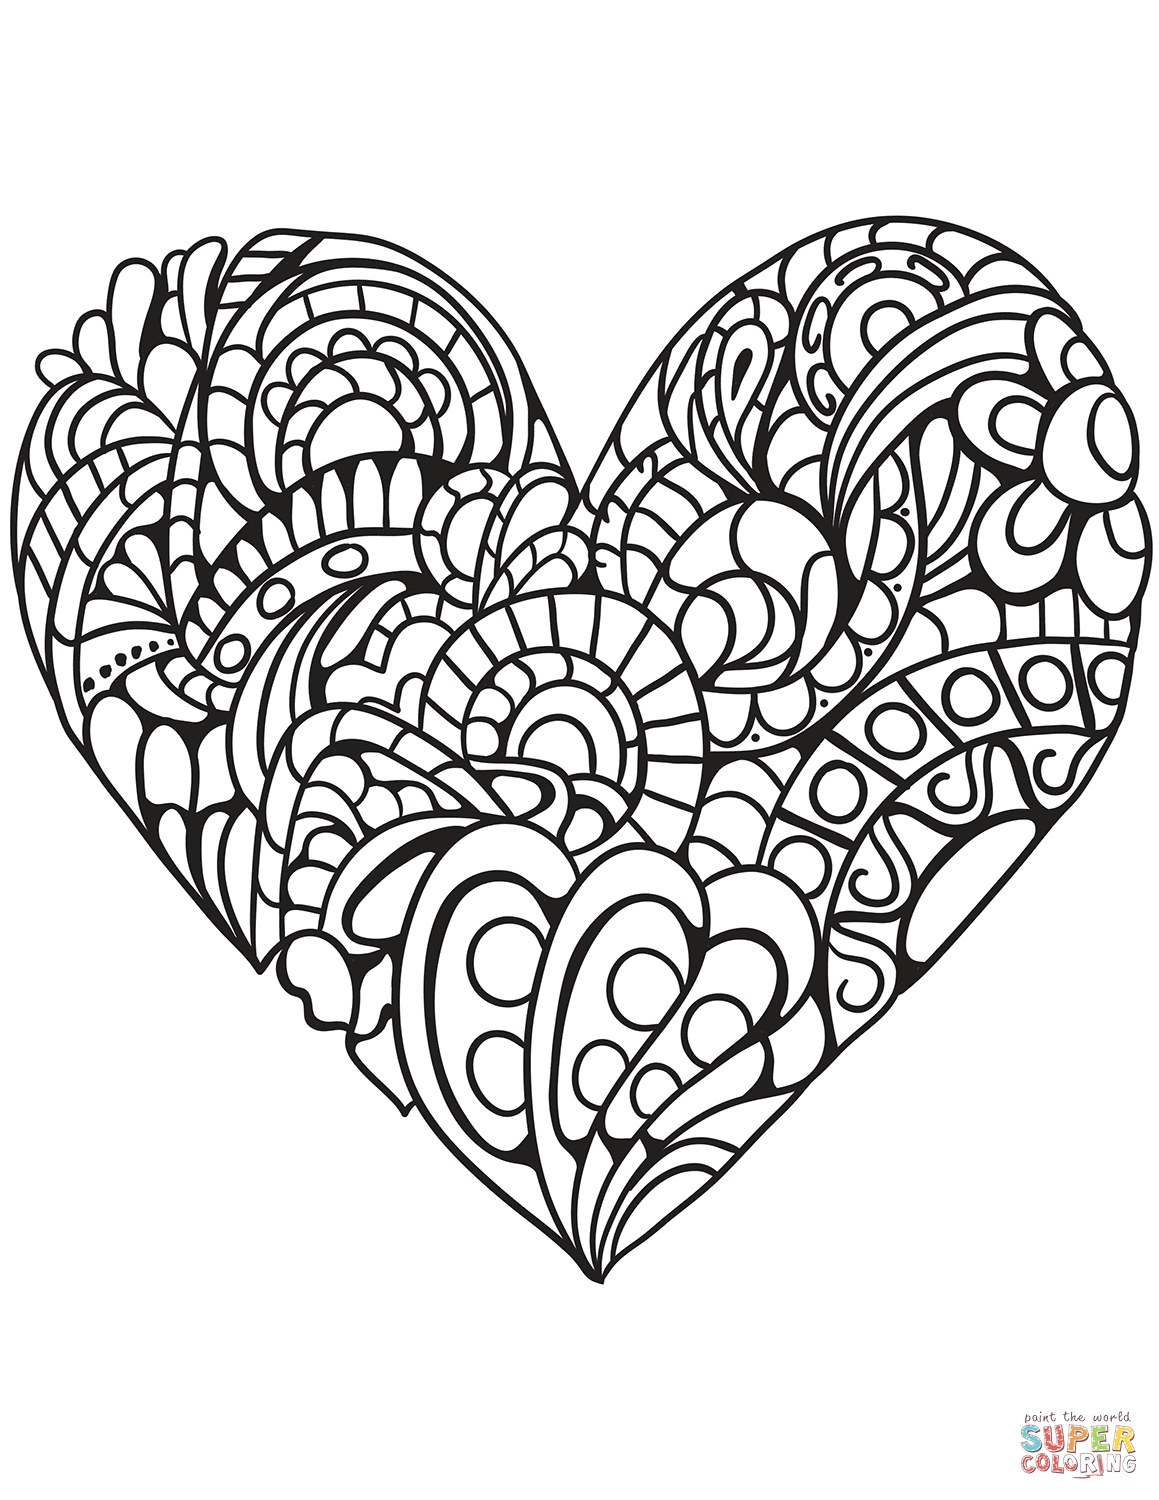 Heart Coloring Pages | Free Printable Pictures - Free Printable Heart Coloring Pages